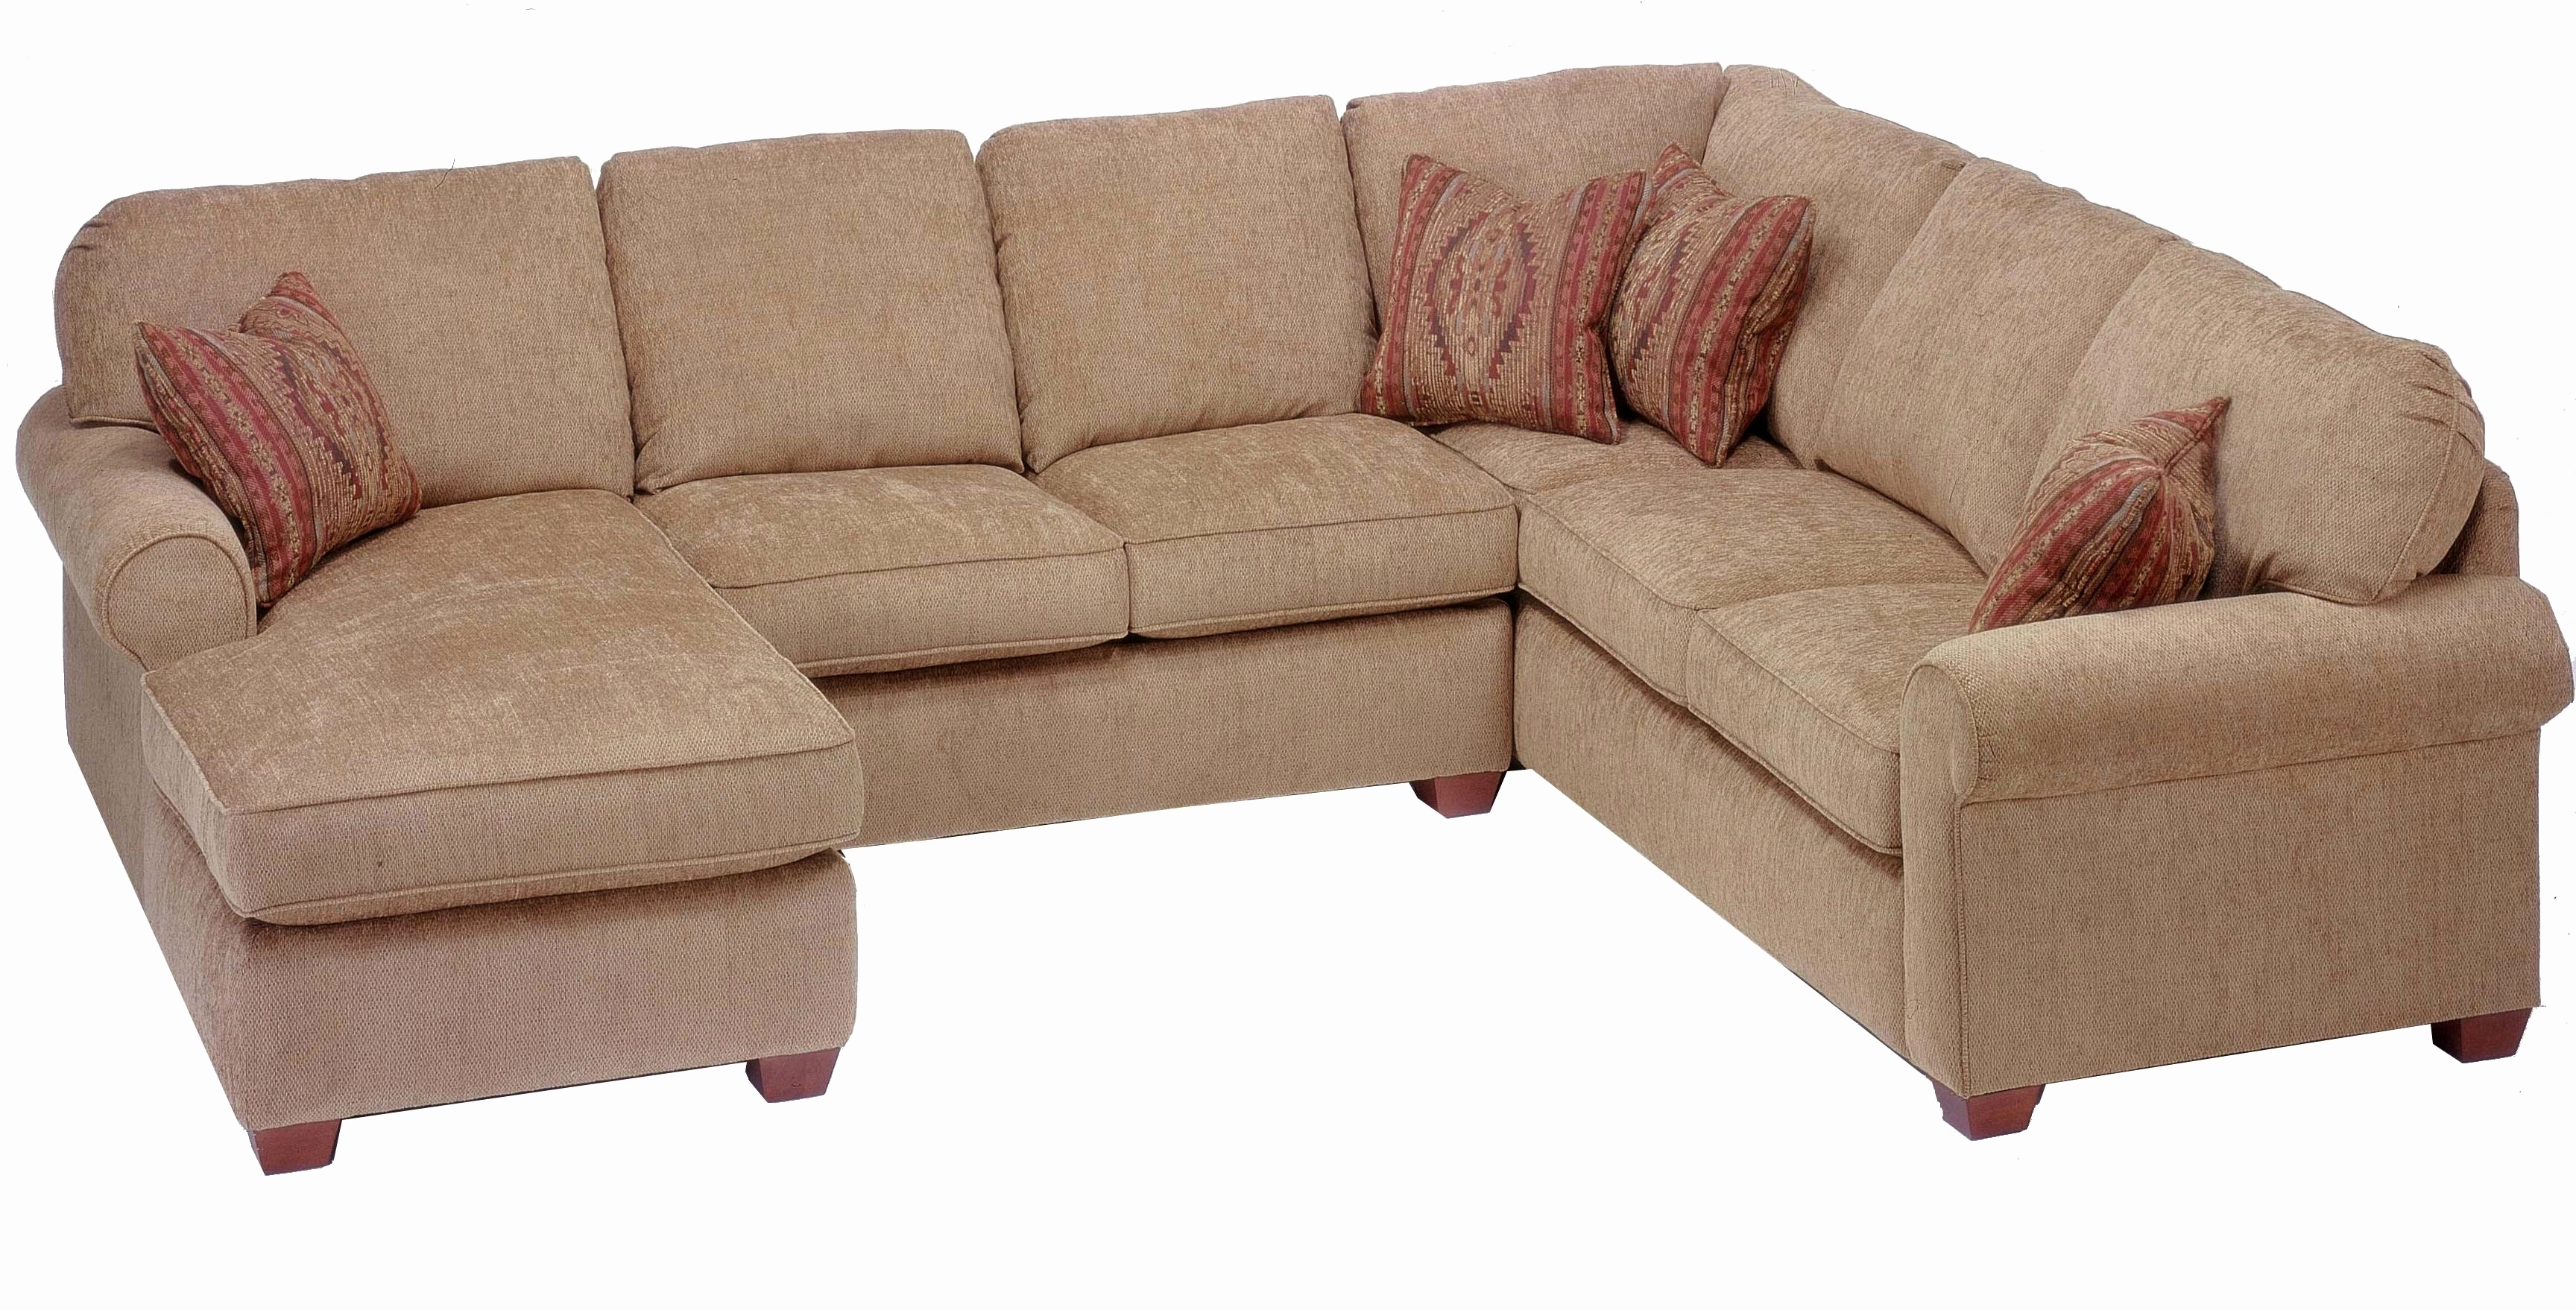 Fresh High Point Sofa 2018 – Couches And Sofas Ideas Pertaining To Jacksonville Nc Sectional Sofas (Image 5 of 10)